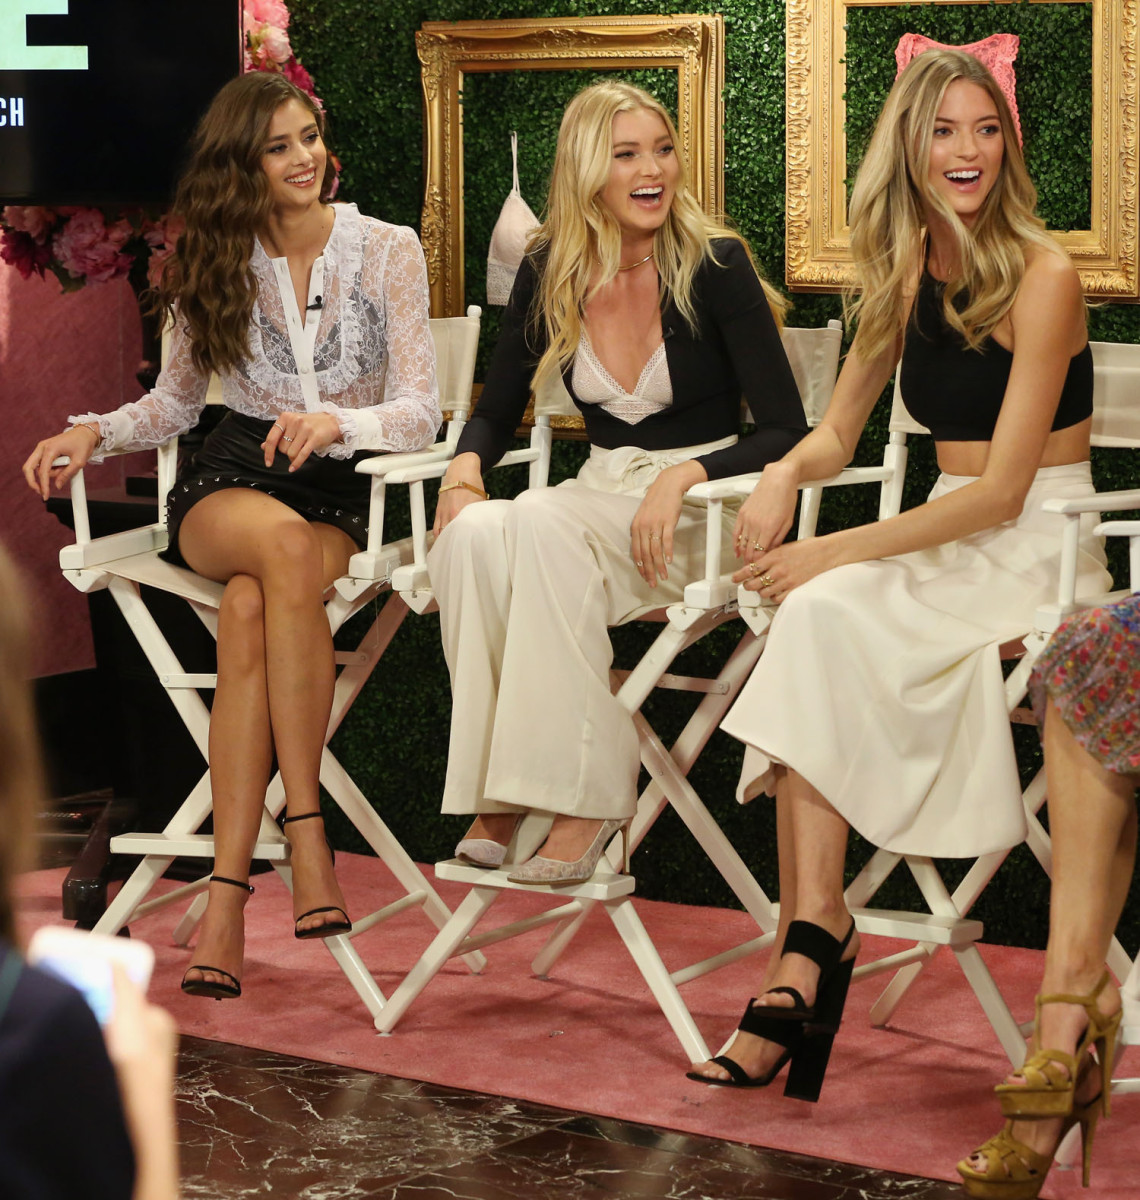 """""""NEW YORK, NEW YORK - APRIL 12: (L-R) Victoria's Secret Angels Taylor Hill, Elsa Hosk and Martha Hunt host global media live stream to reveal Bralette Collection & launch multi-city tour at Victoria's Secret Herald Square on April 12, 2016 in New York City (Photo by Cindy Ord/Getty Images for Victoria's Secret)"""""""